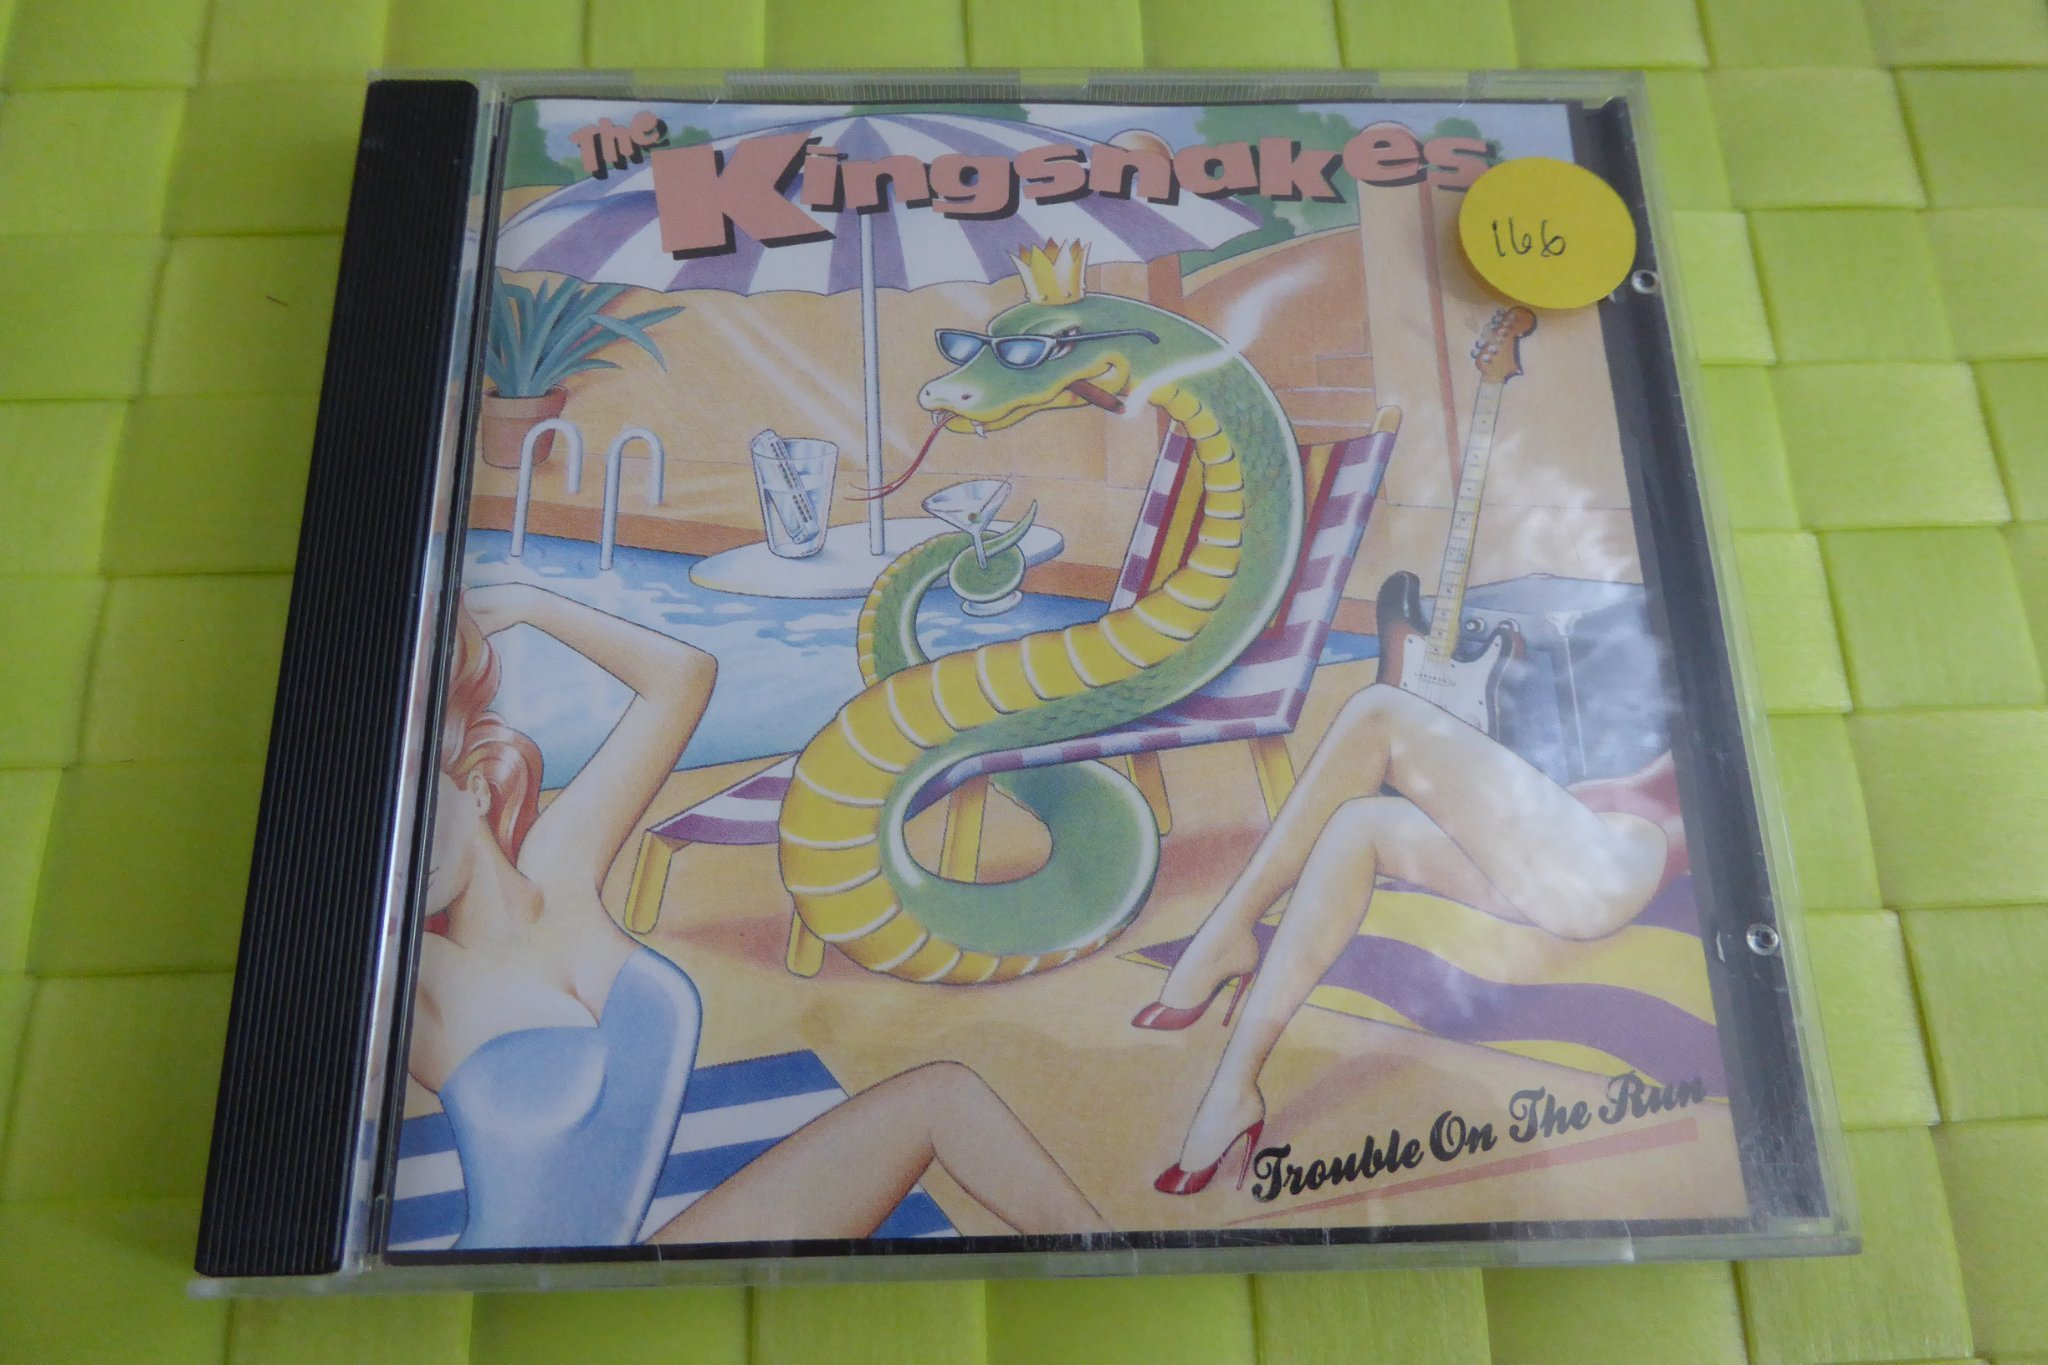 THE KINGSNAKES - CD - TROUBLE ON THE RUN - BLUES 1990!!!